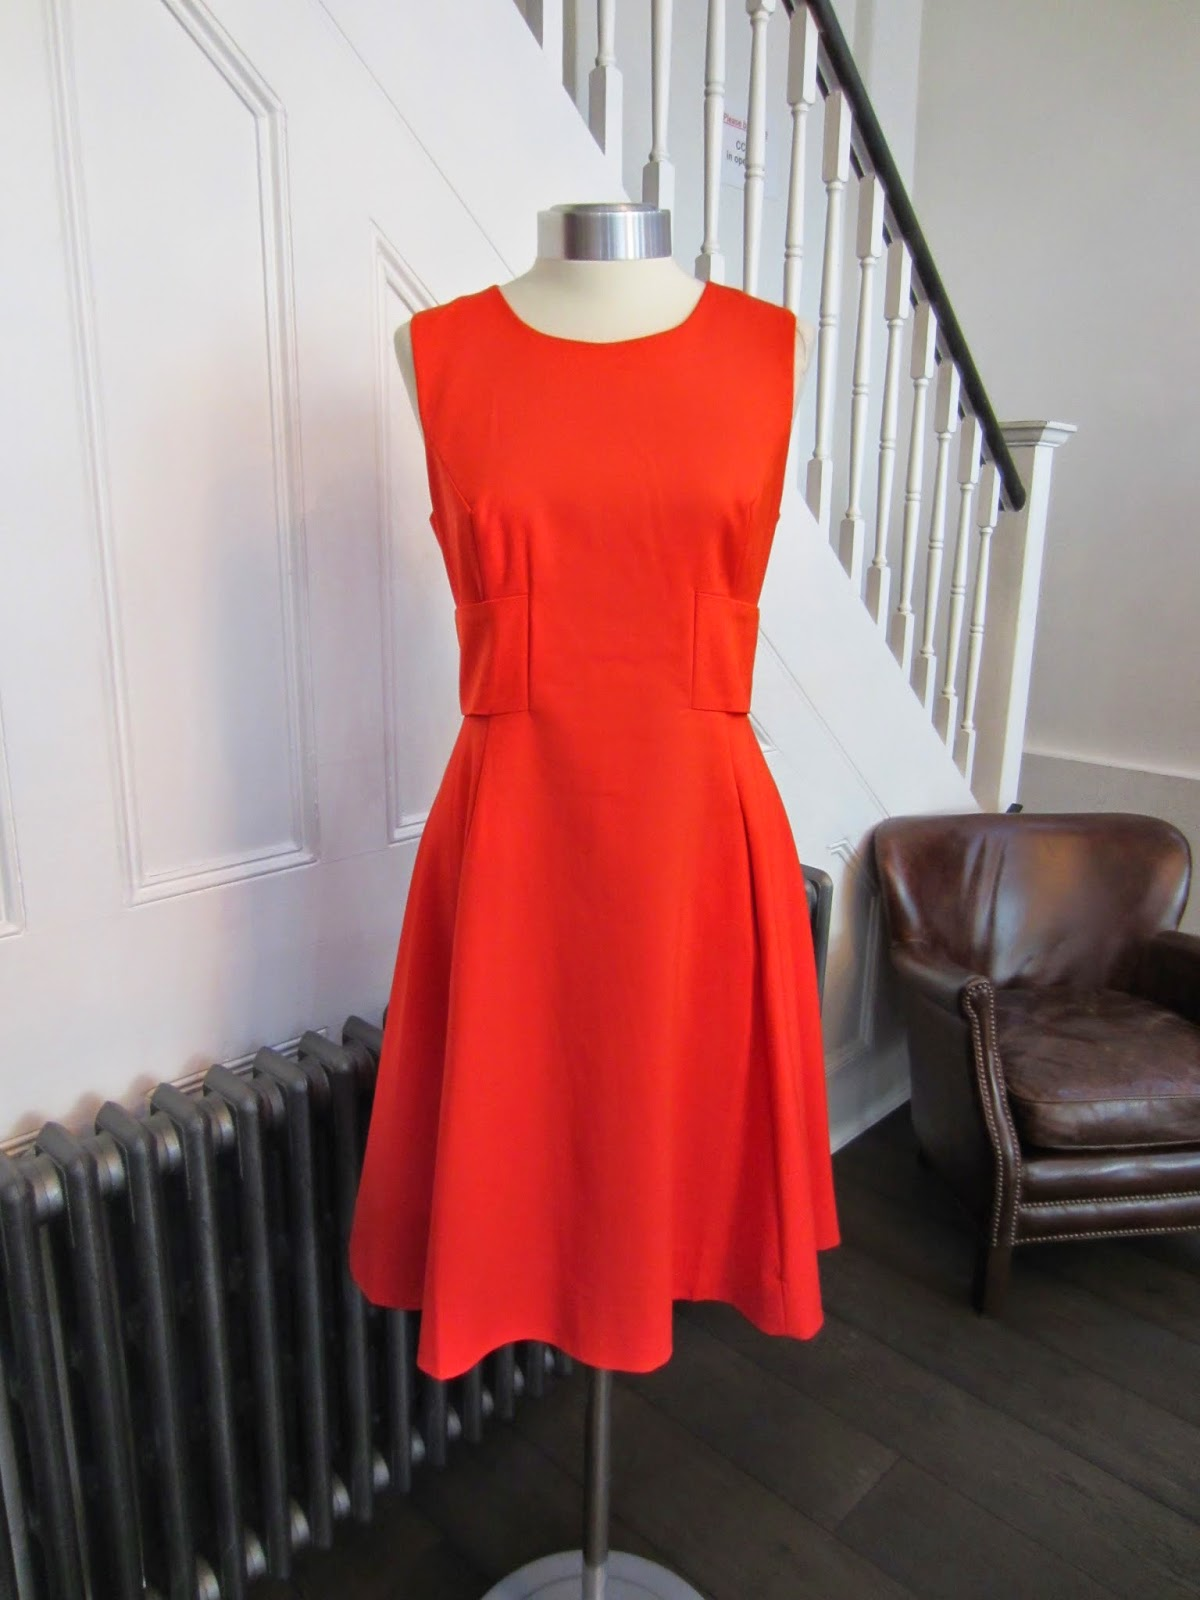 Kate Spade Orange Fit & Flare Dress with Bow